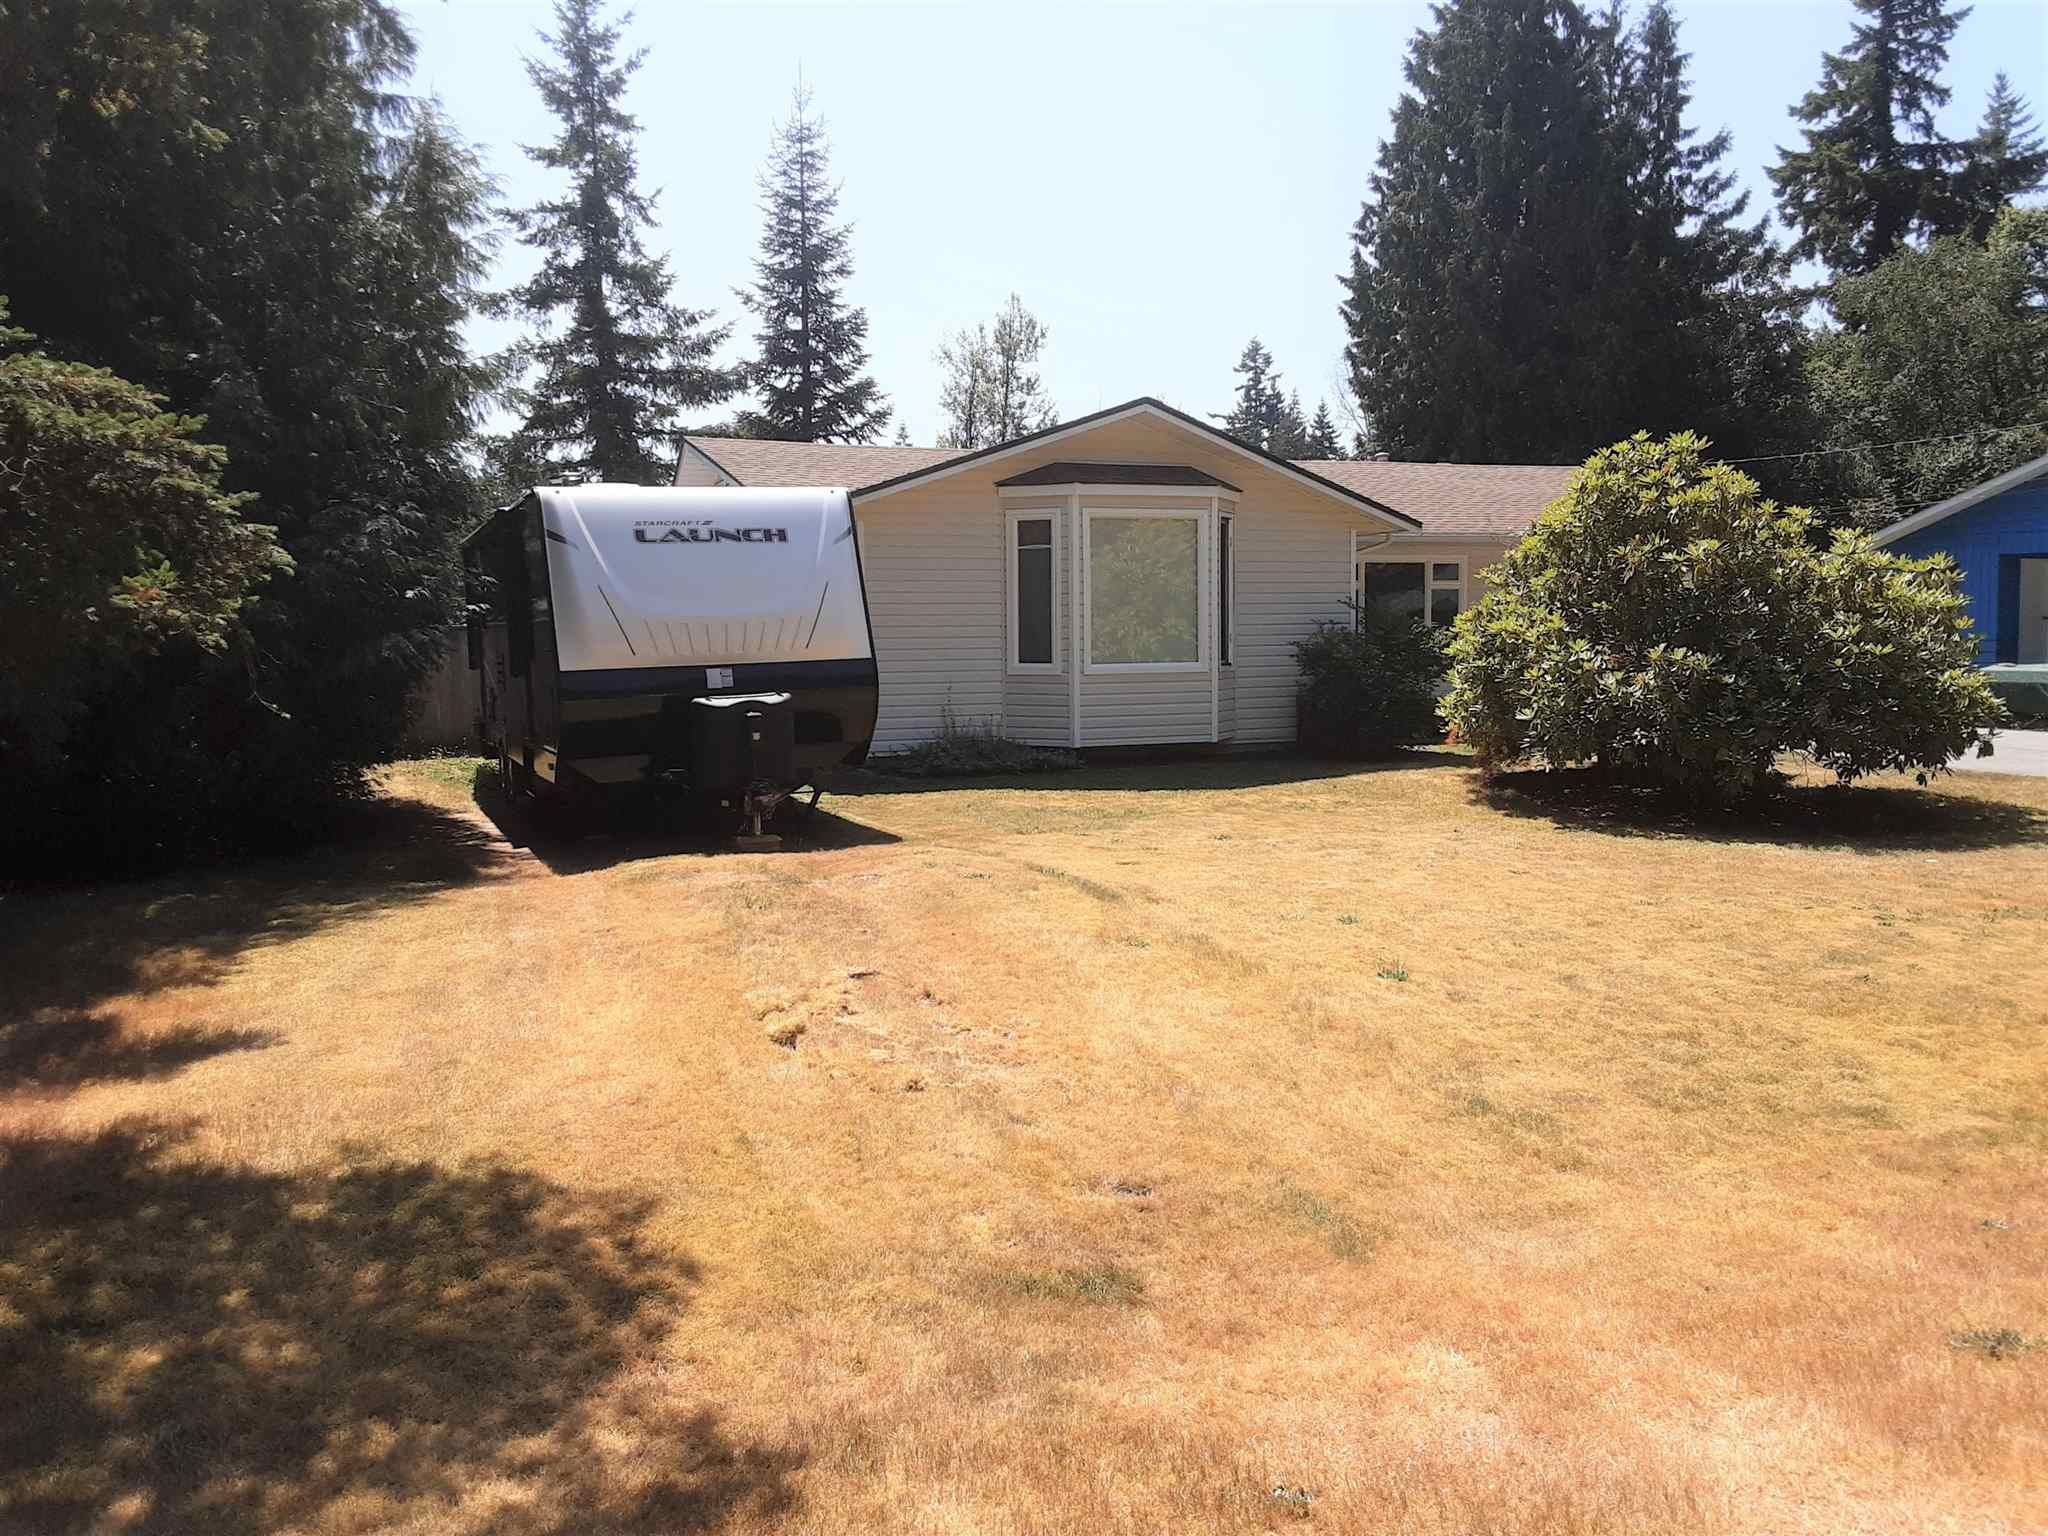 """Photo 3: Photos: 19740 40A Avenue in Langley: Brookswood Langley House for sale in """"BROOKSWOOD"""" : MLS®# R2602130"""